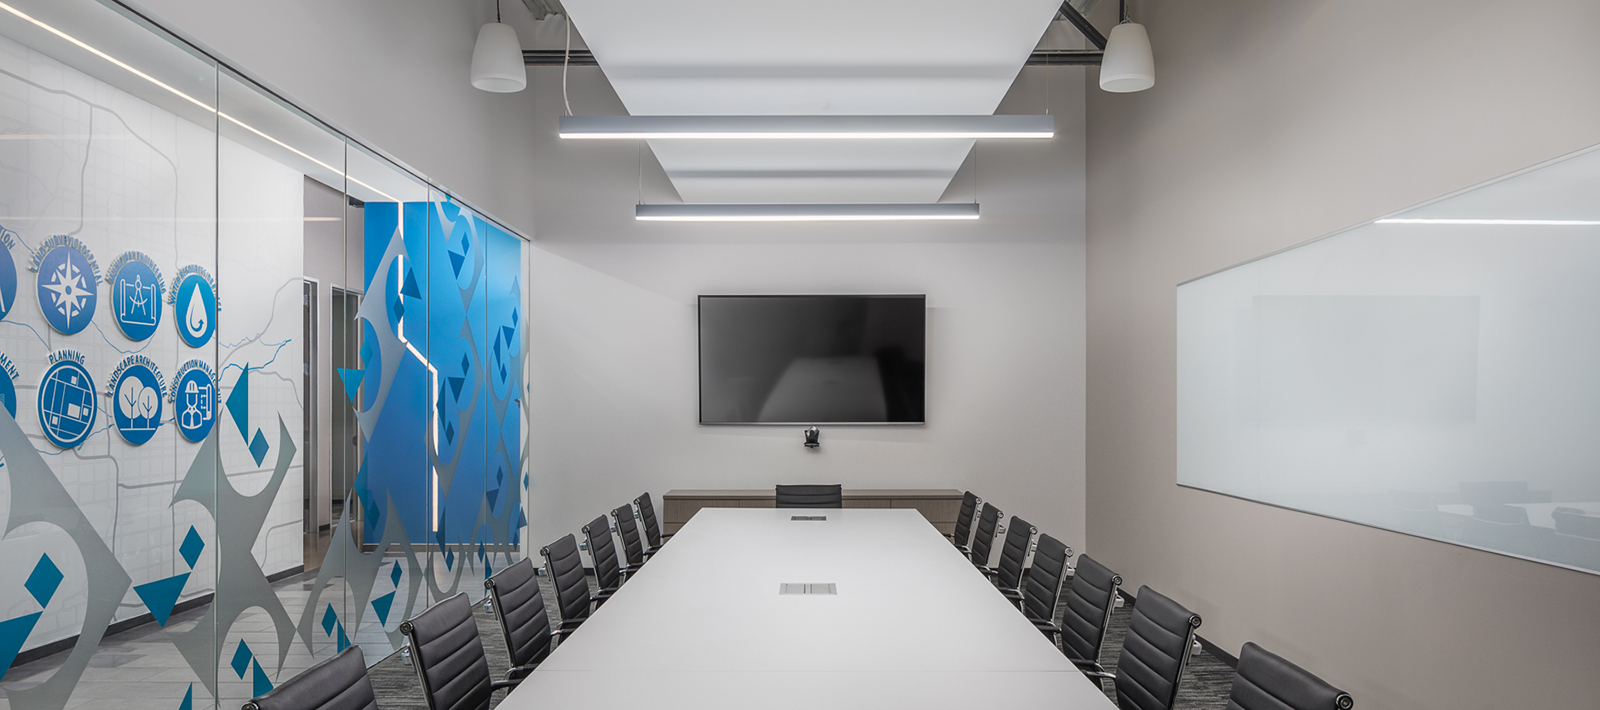 Conference Room Focal Point Lights